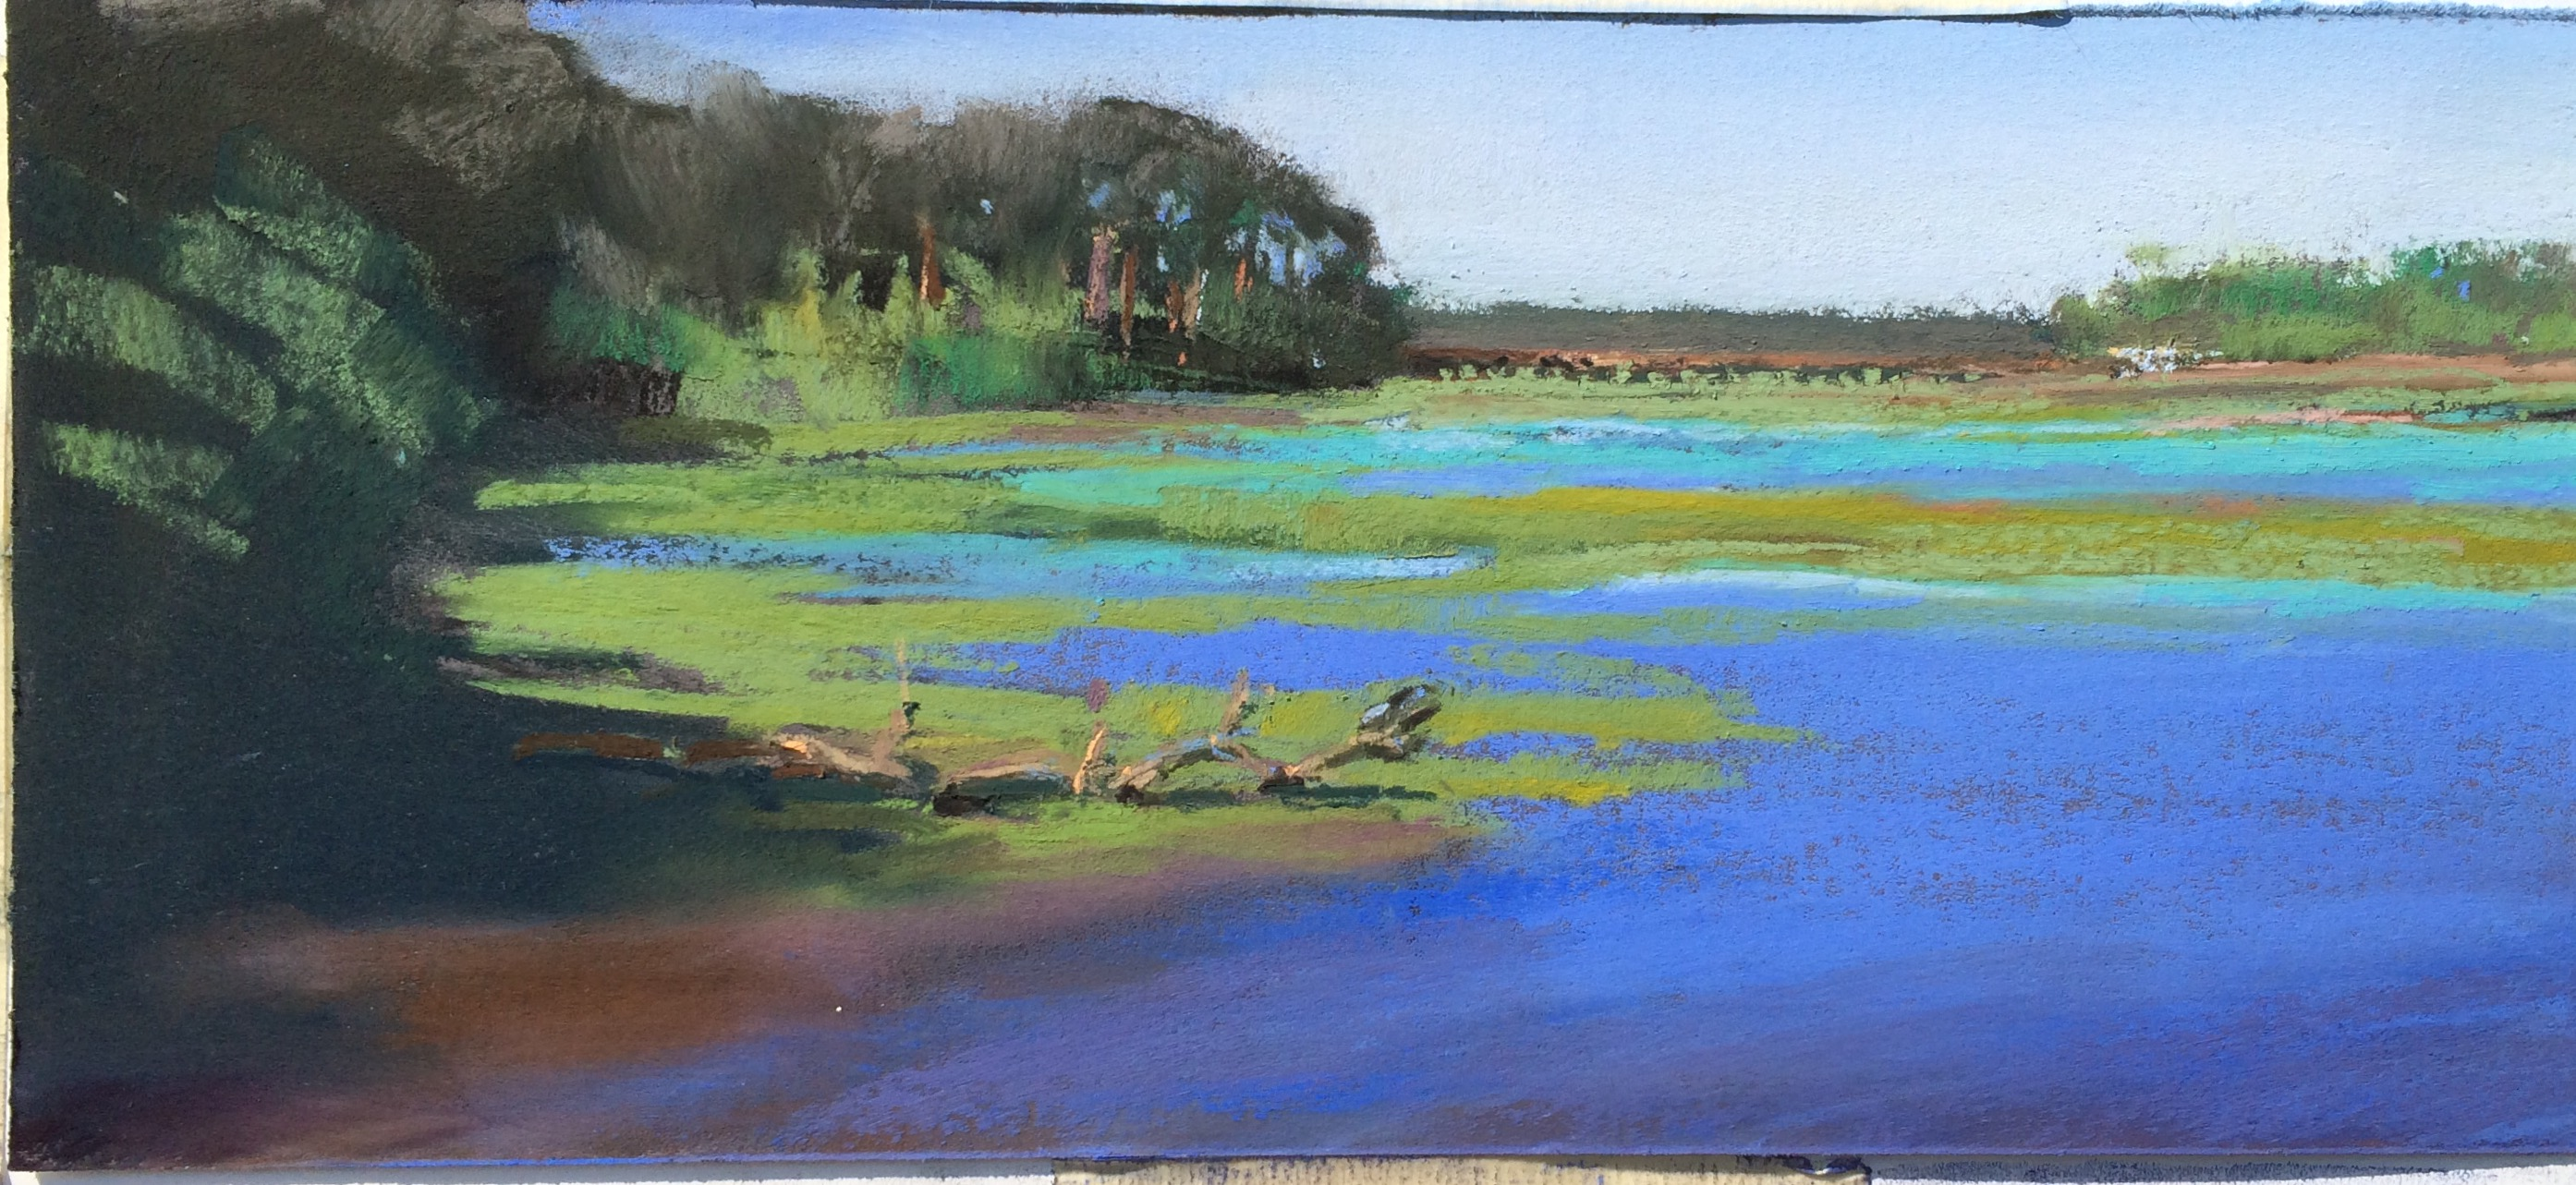 Sightly Tidal Right Before Water Ran A Yellow Crowned Night Heronlanded Postcard From Spring Sc Drawing Motmot Spring Island Sc Golf Spring Island Sc History houzz-03 Spring Island Sc